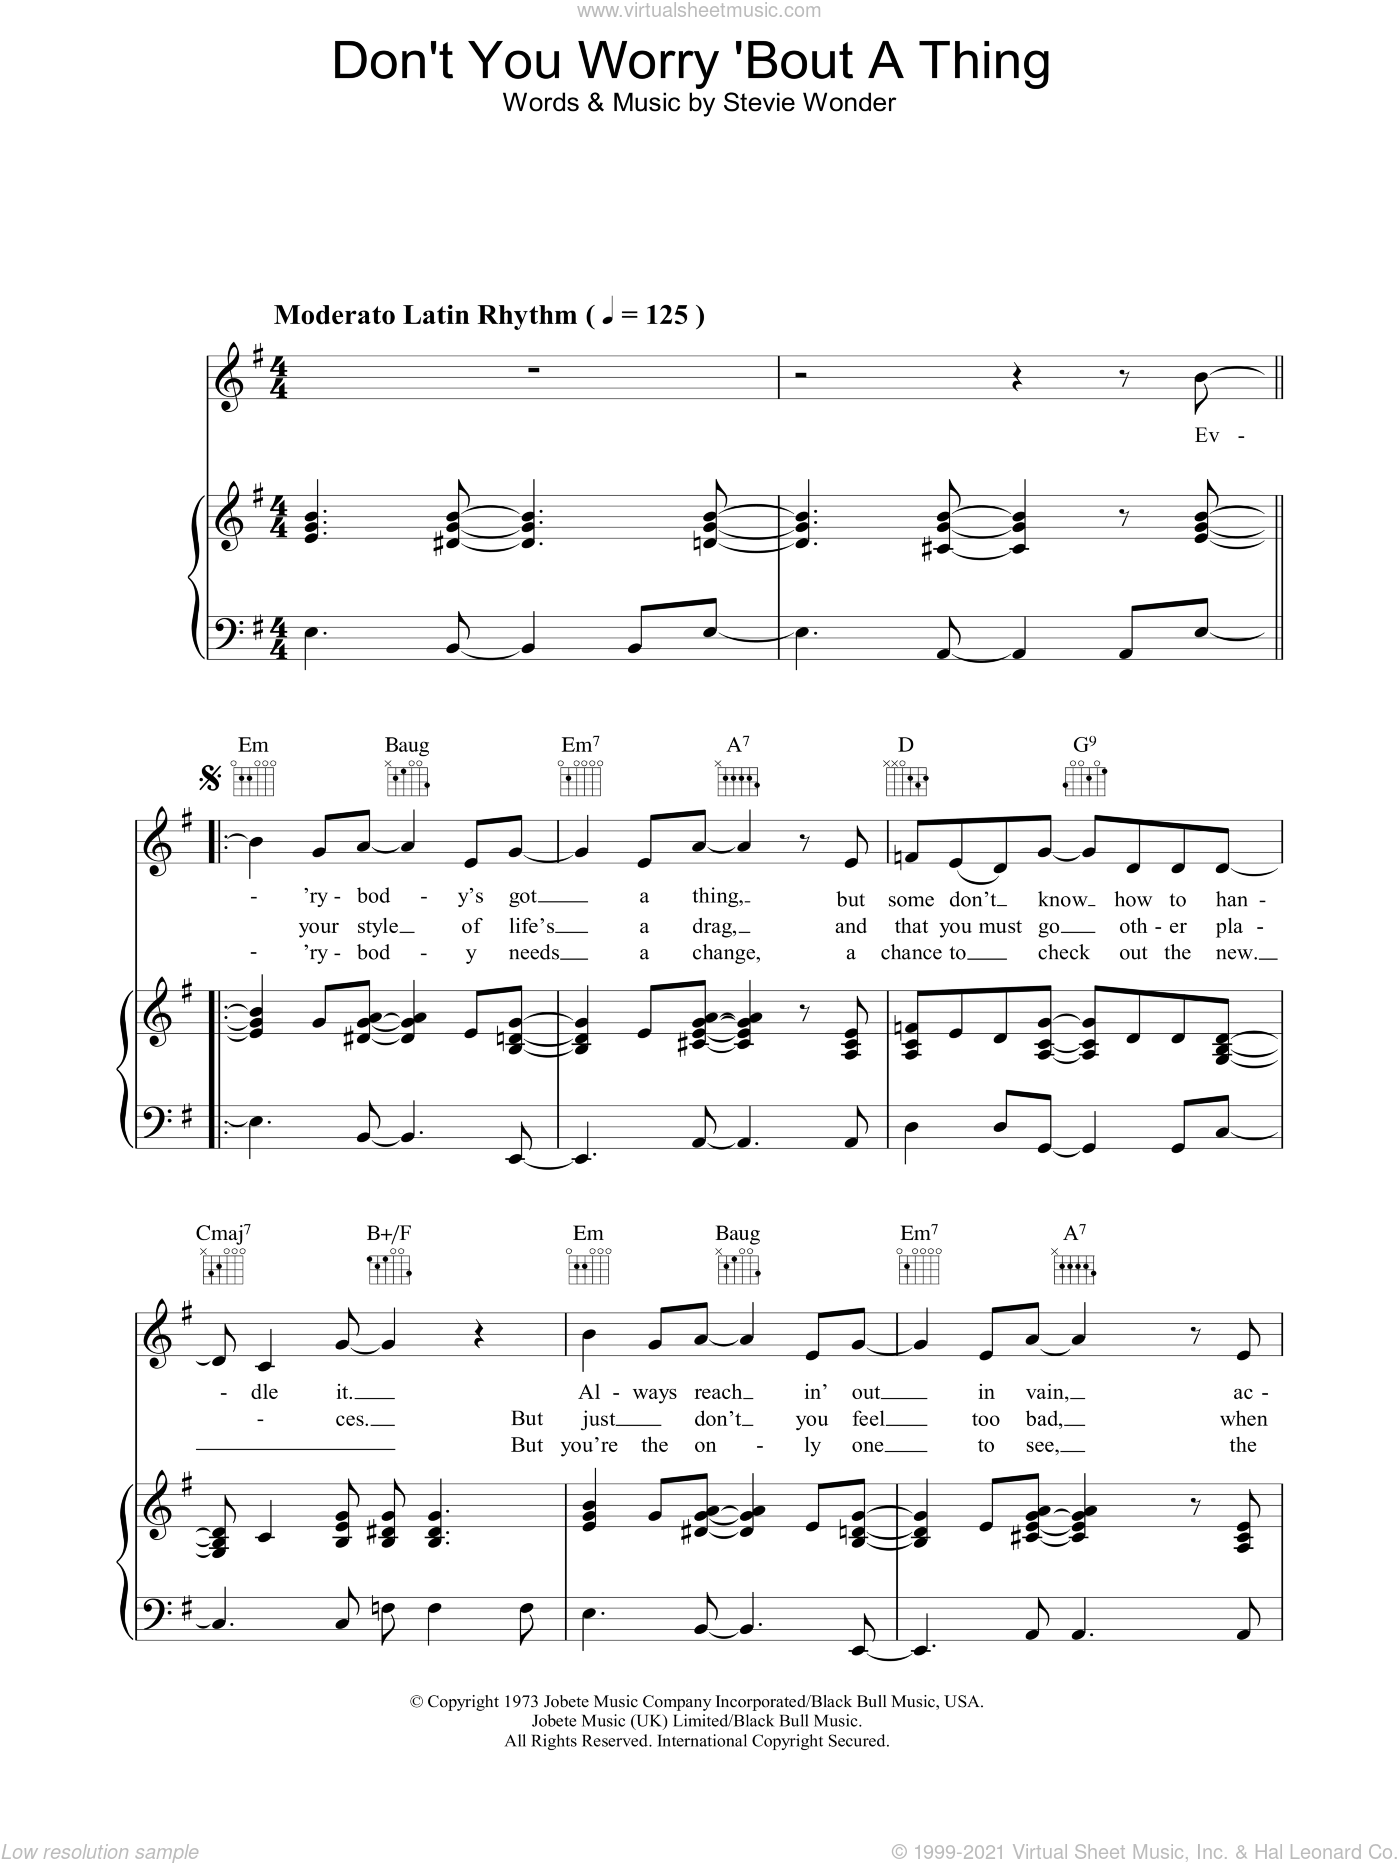 Don't You Worry 'Bout A Thing sheet music for voice, piano or guitar by Stevie Wonder